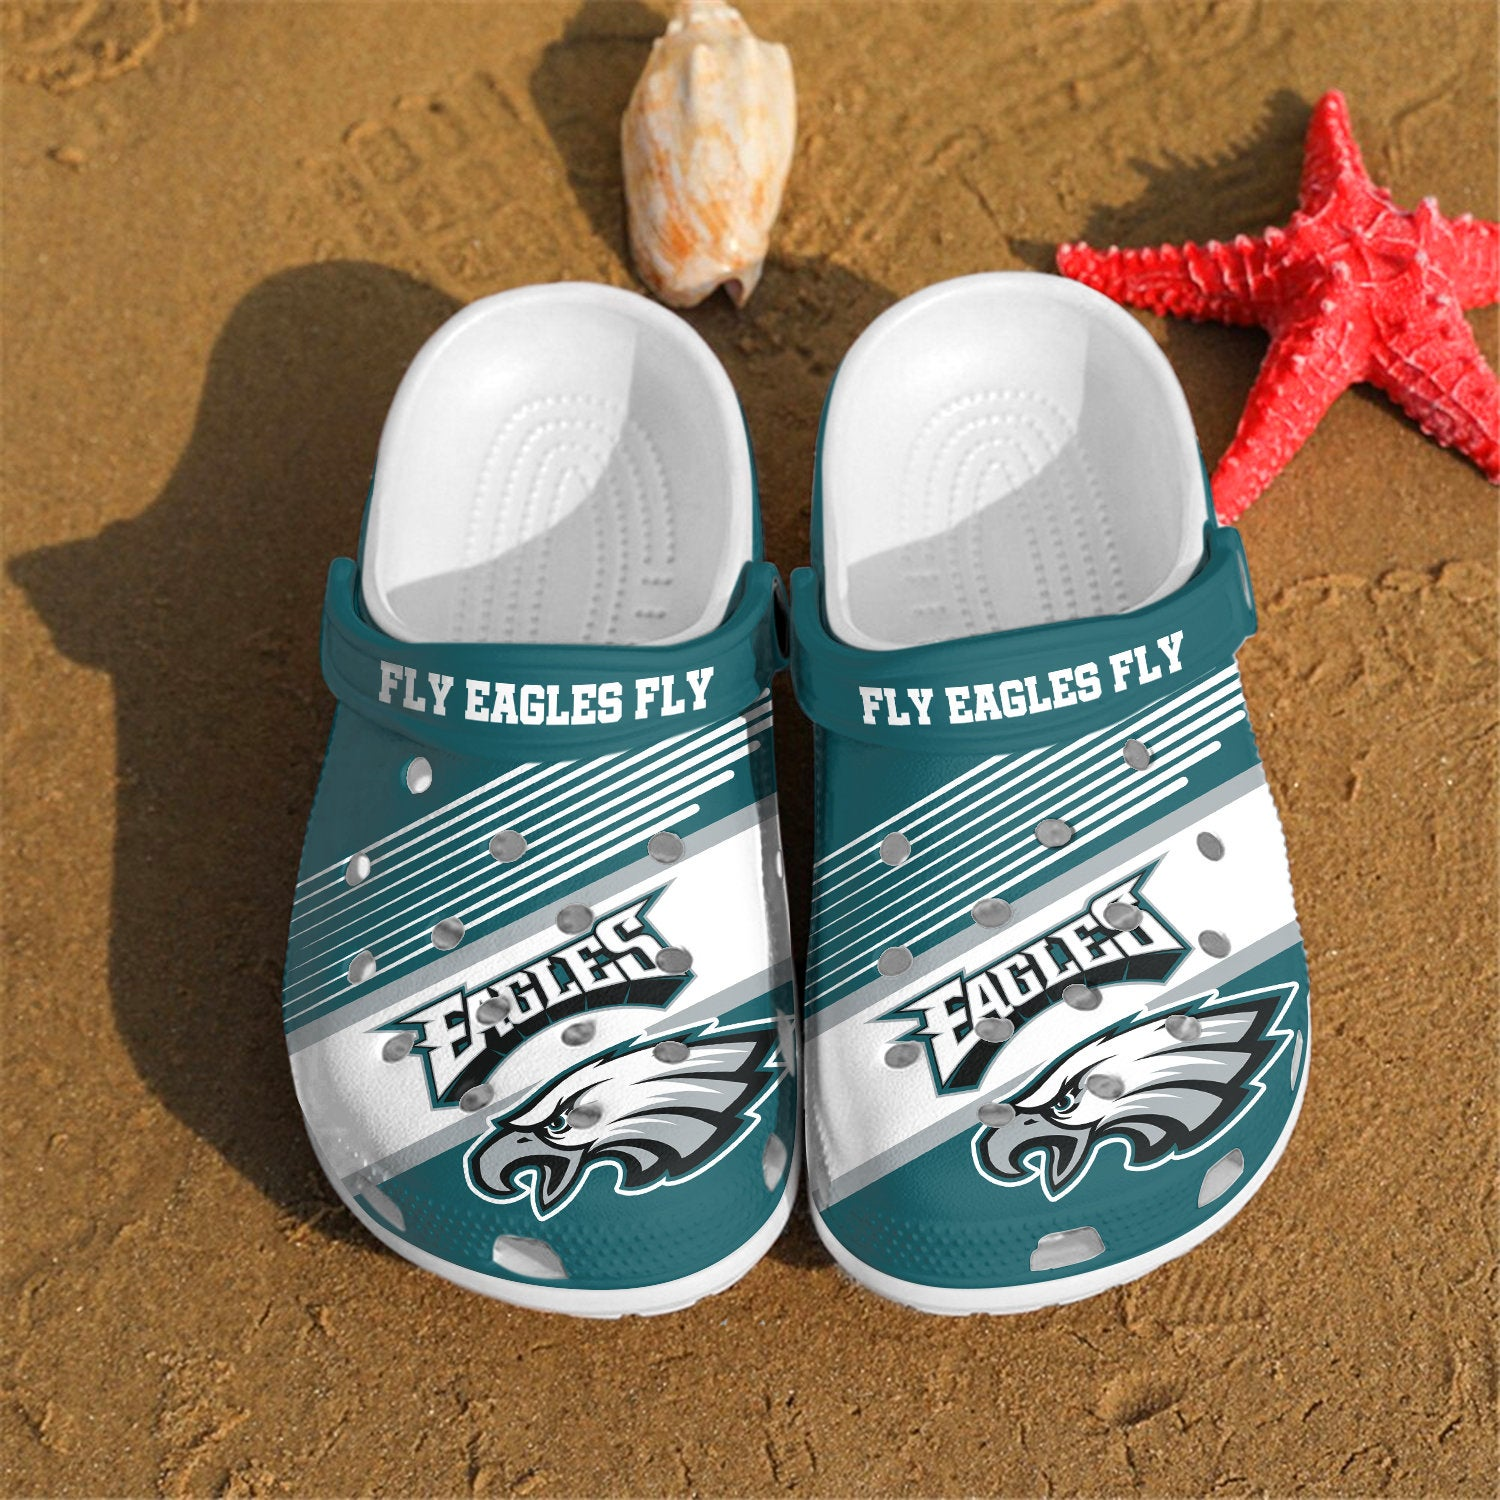 Philadelphia Eagles Fly Eagles Fly Custom For Nfl Fans Crocs Clog Shoes